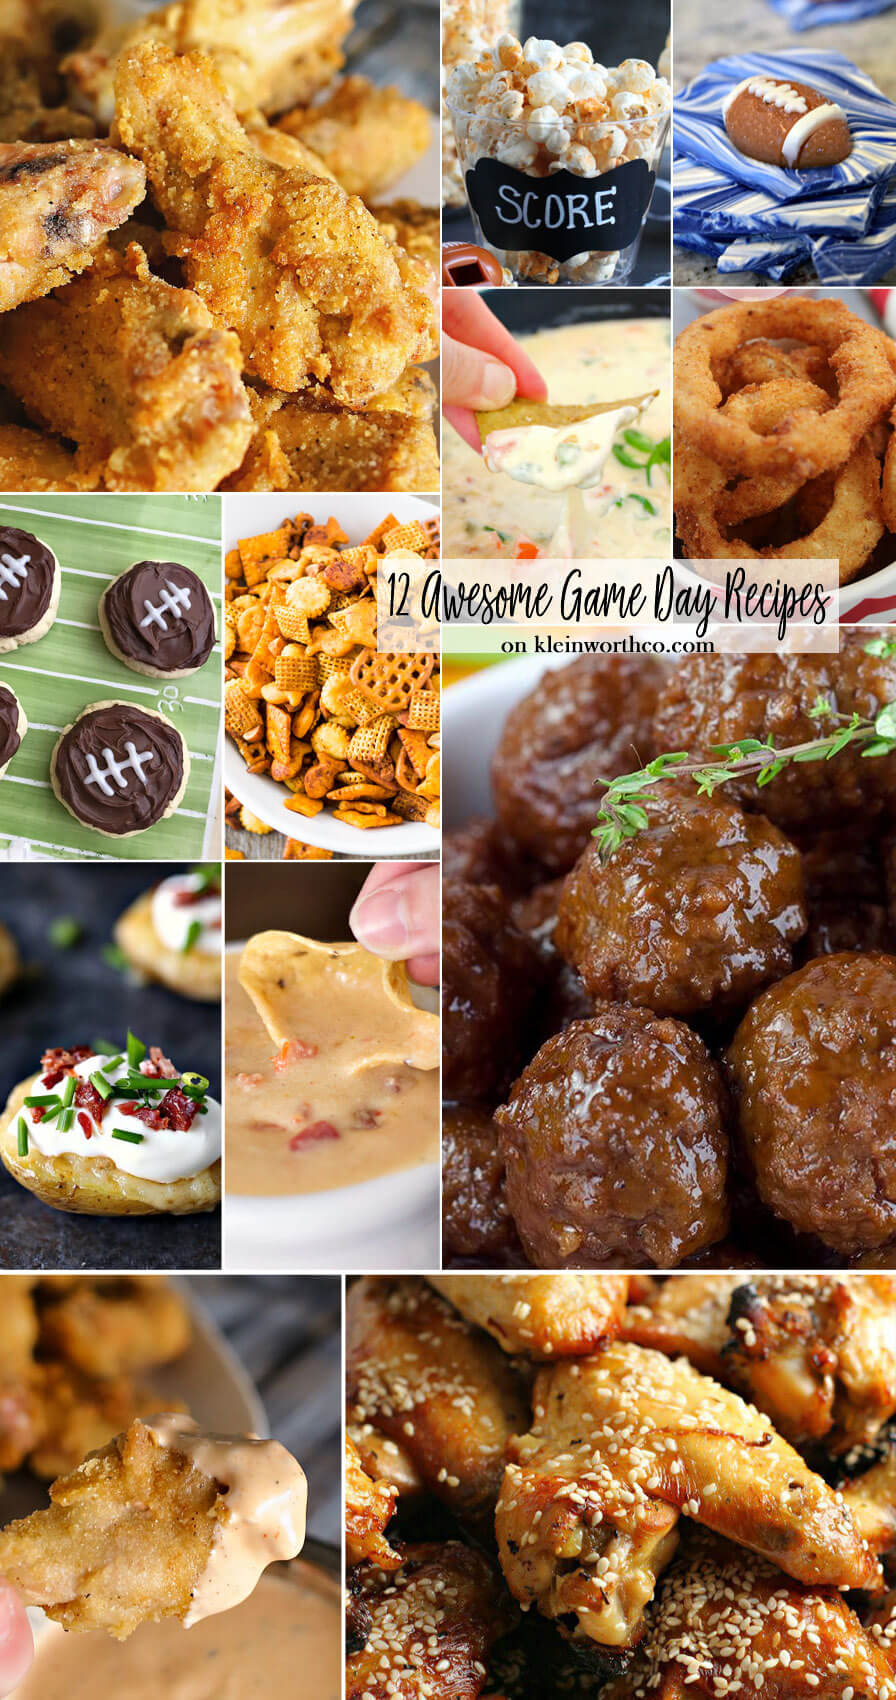 12 Awesome Game Day Recipes